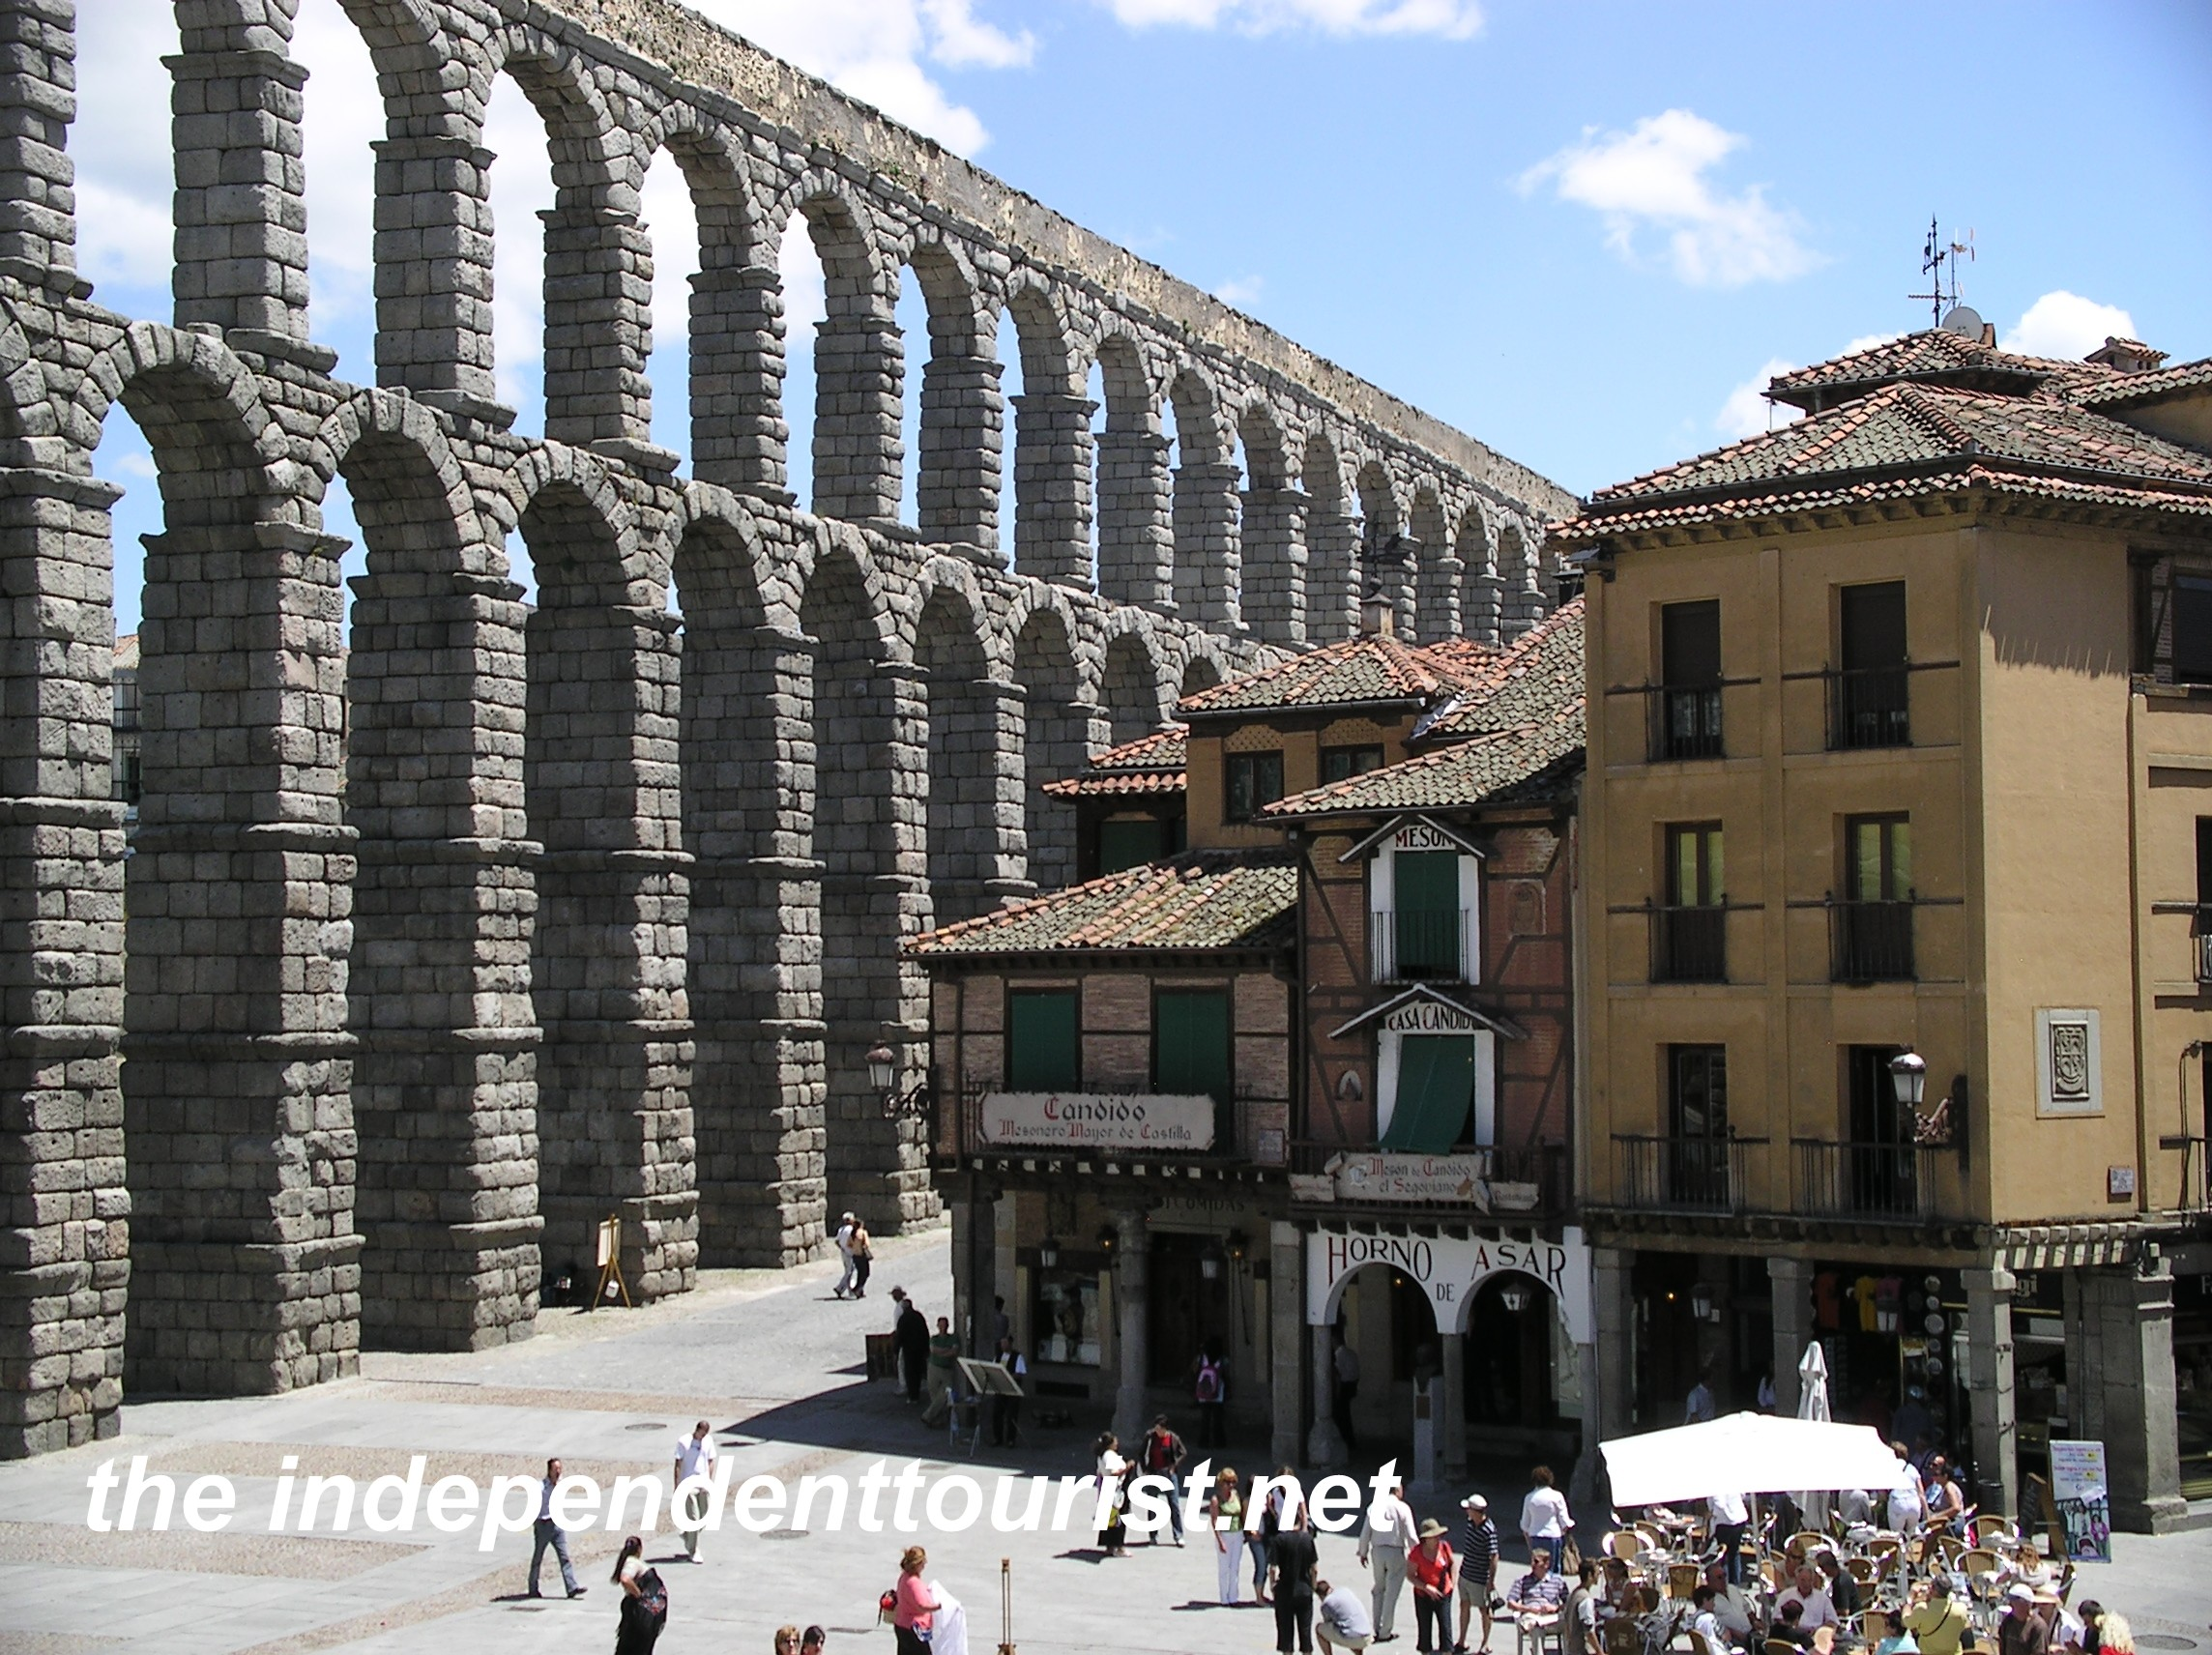 Segovia Aqueduct  The Independent Tourist